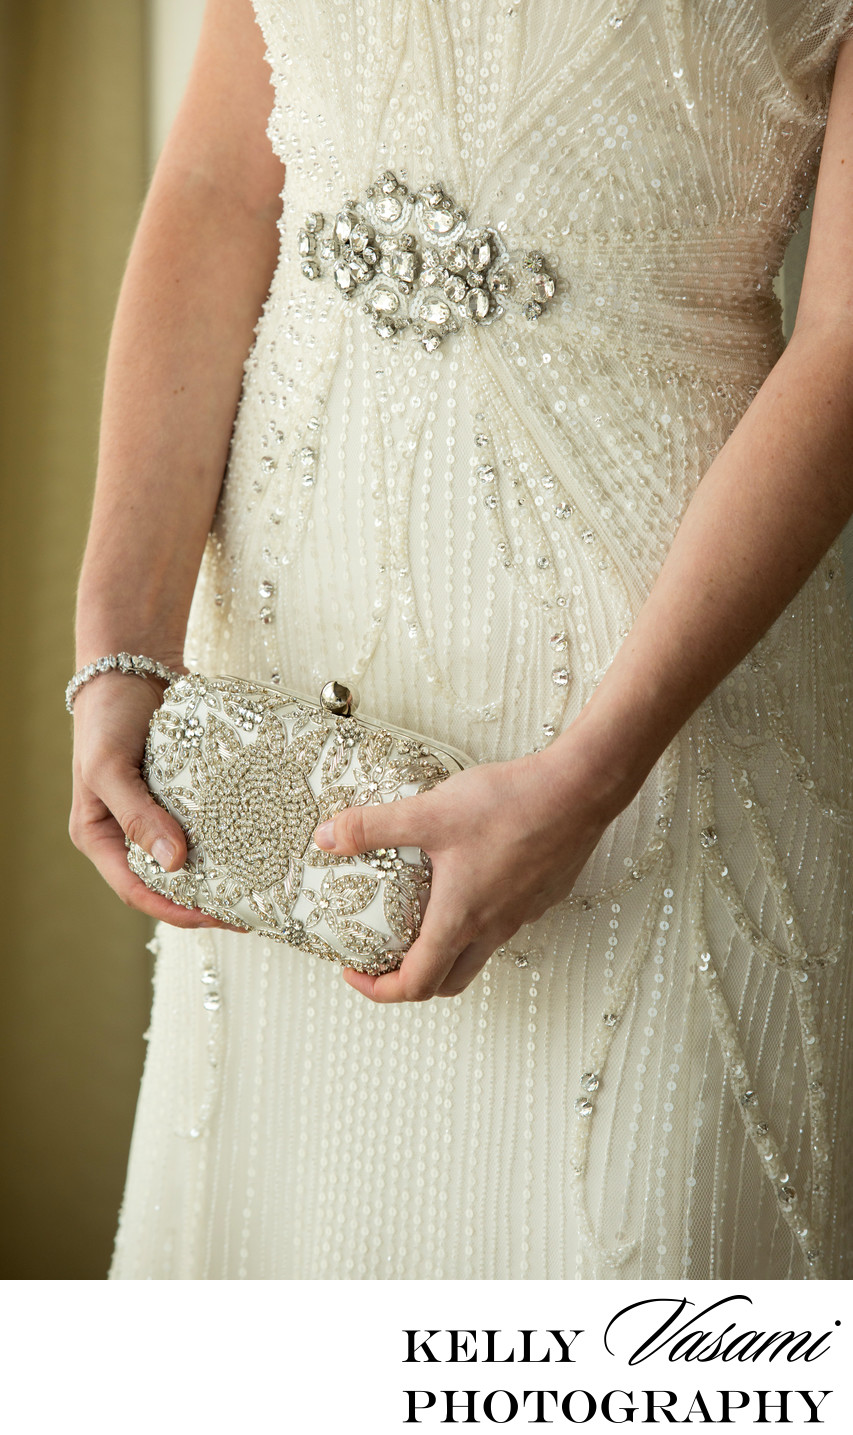 Vintage Beaded Purse & Wedding Gown | Westchester